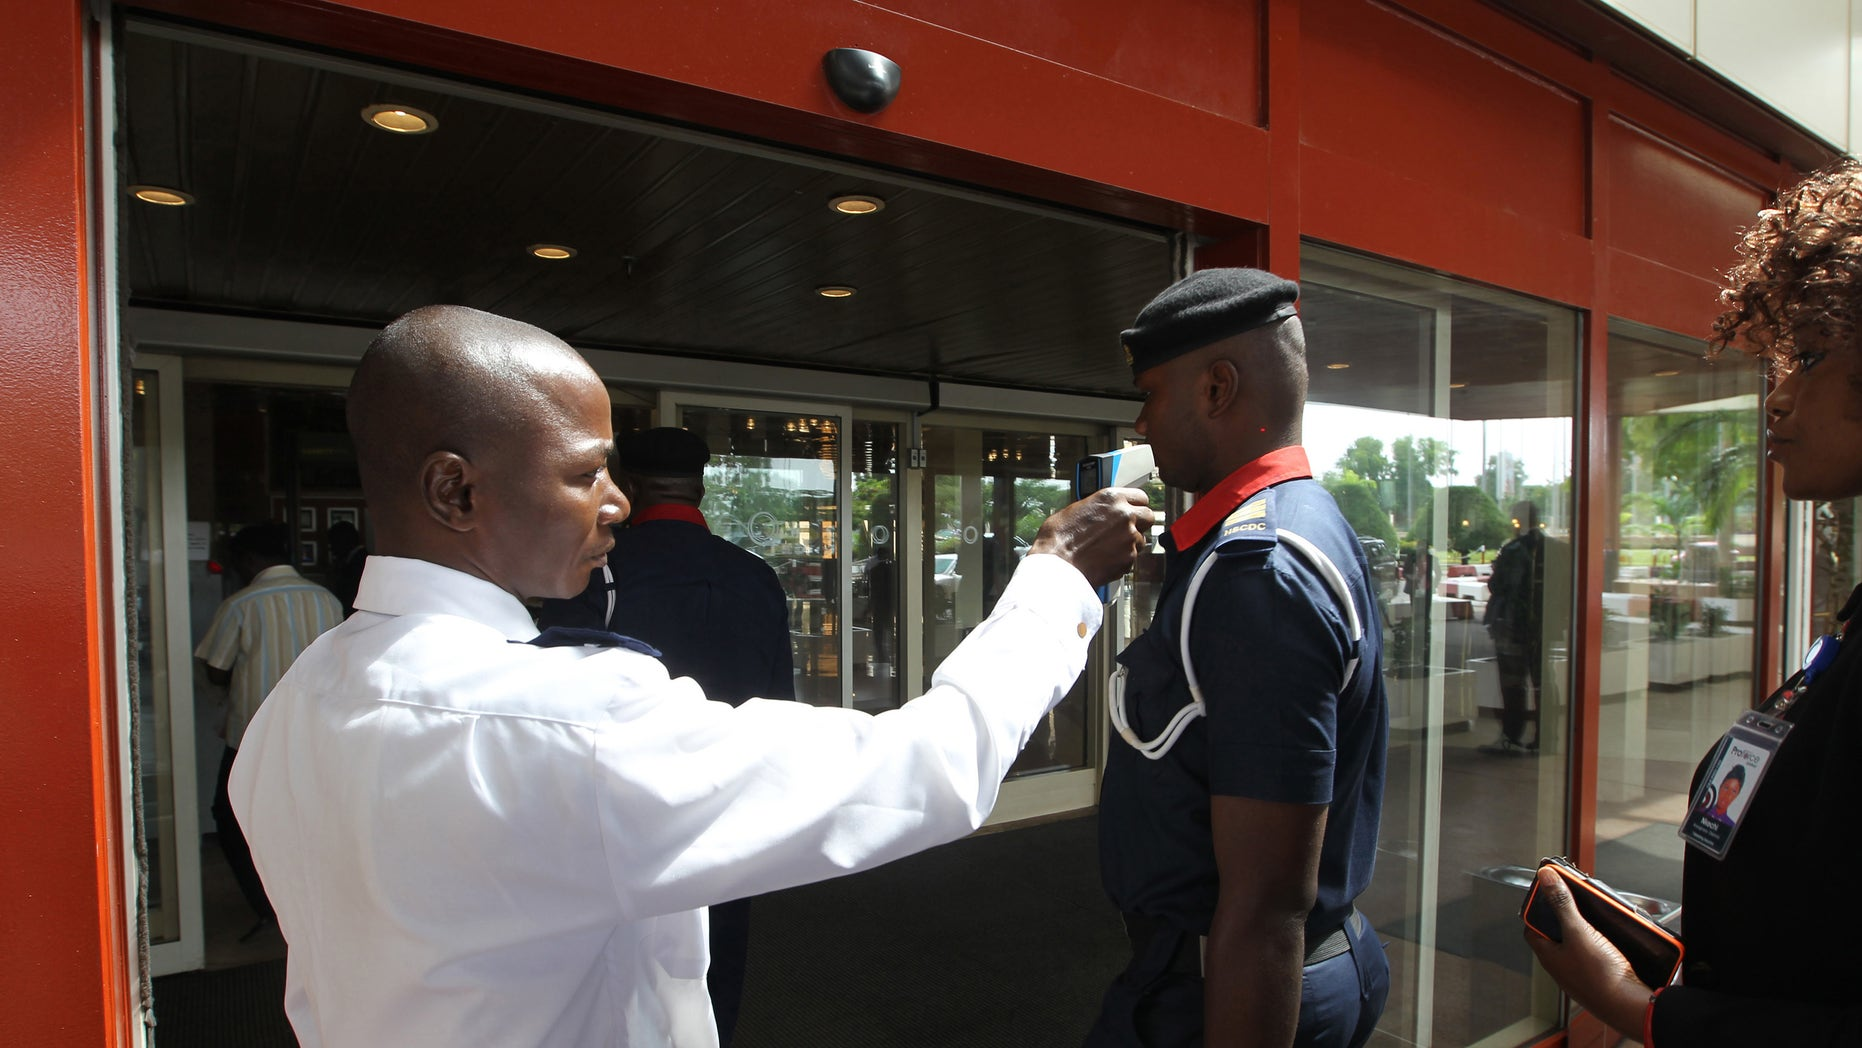 A security personnel screens a man's temperature at the entrance of Transcorp Hilton hotel in Abuja September 3, 2014. REUTERS/Afolabi Sotunde